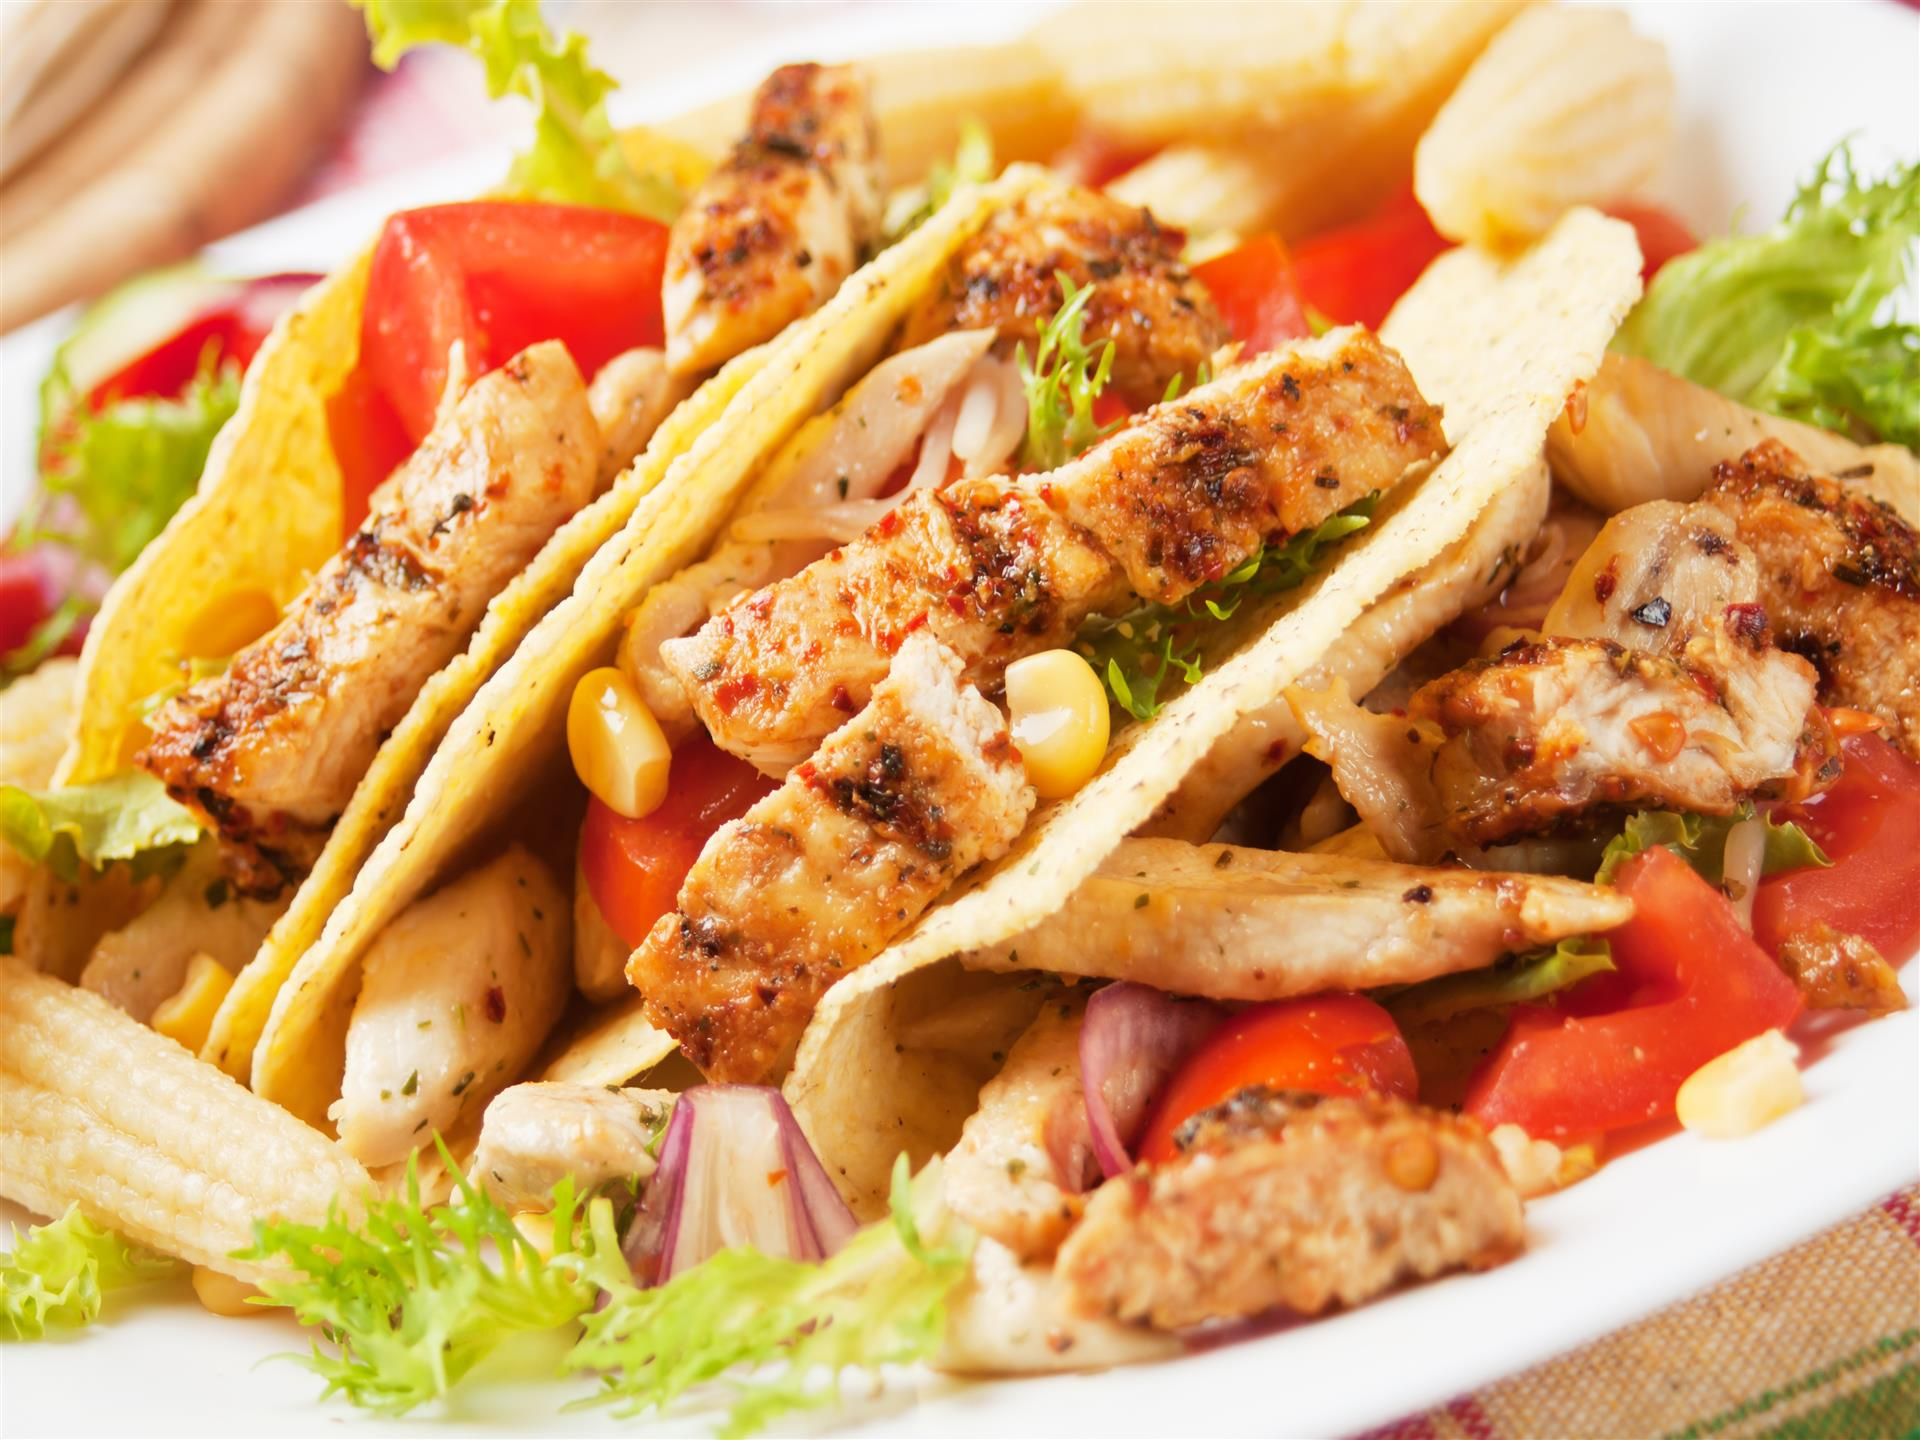 Three chicken tacos with corn, onion, lettuce and tomatoes